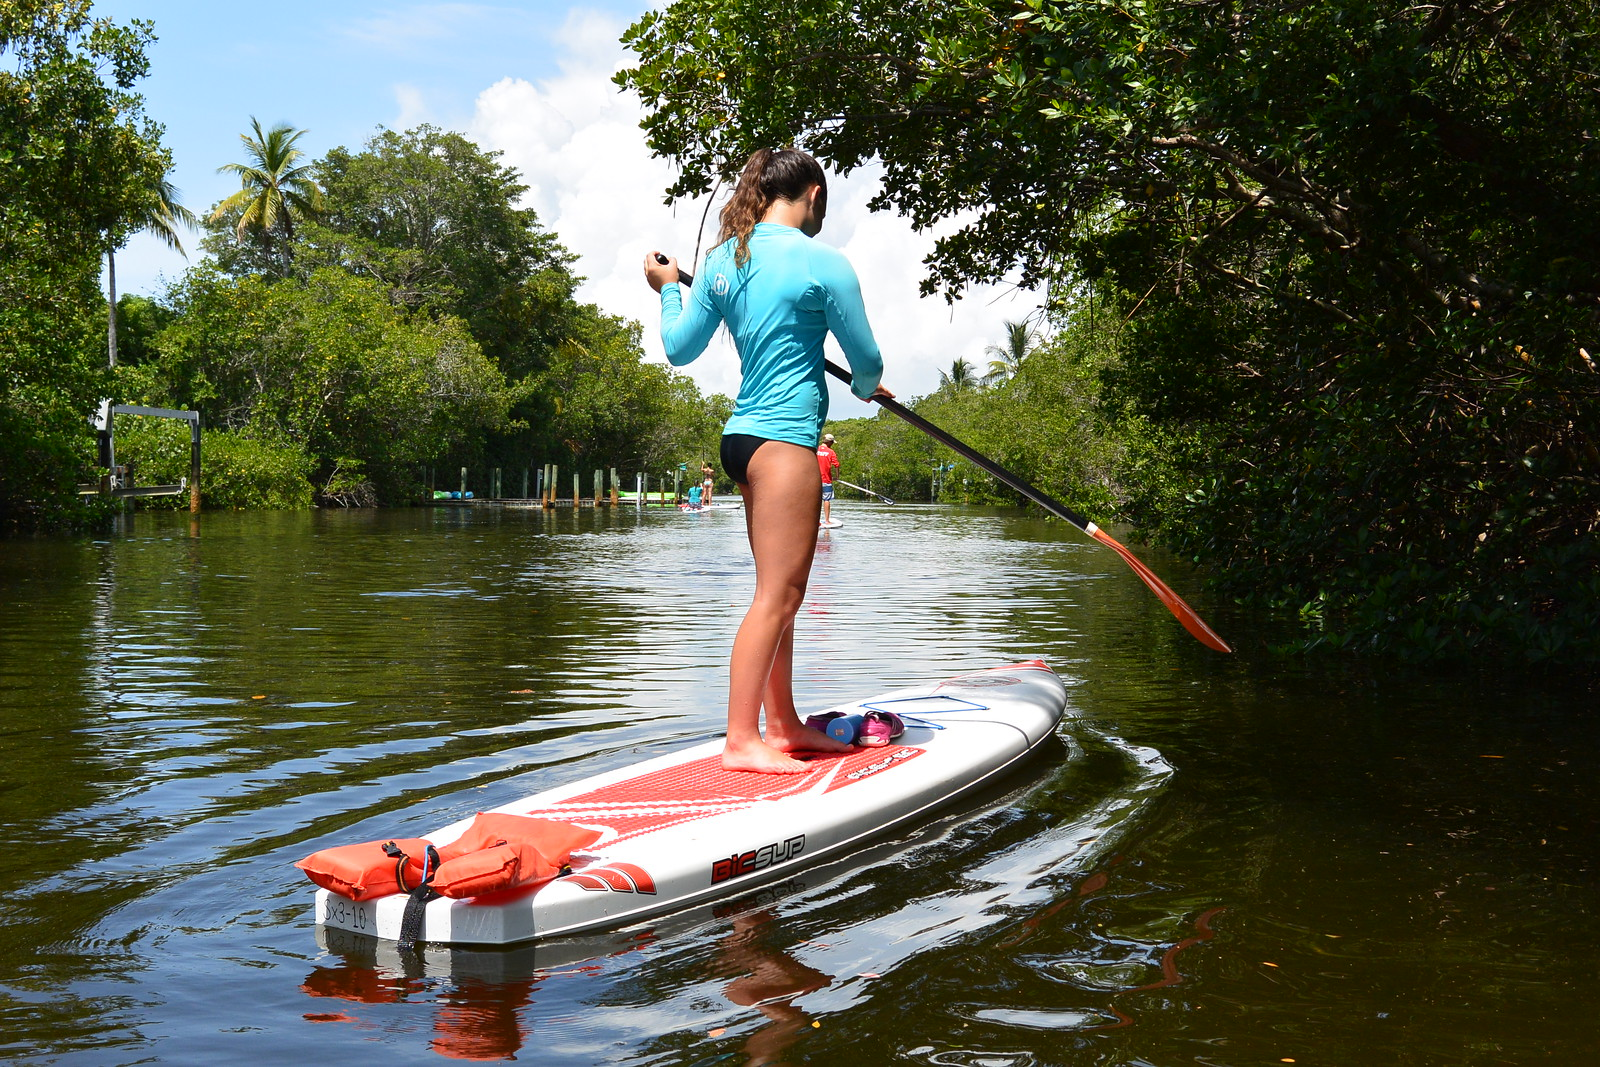 There are a few basic rules that will help you enjoy a safe paddling experience.